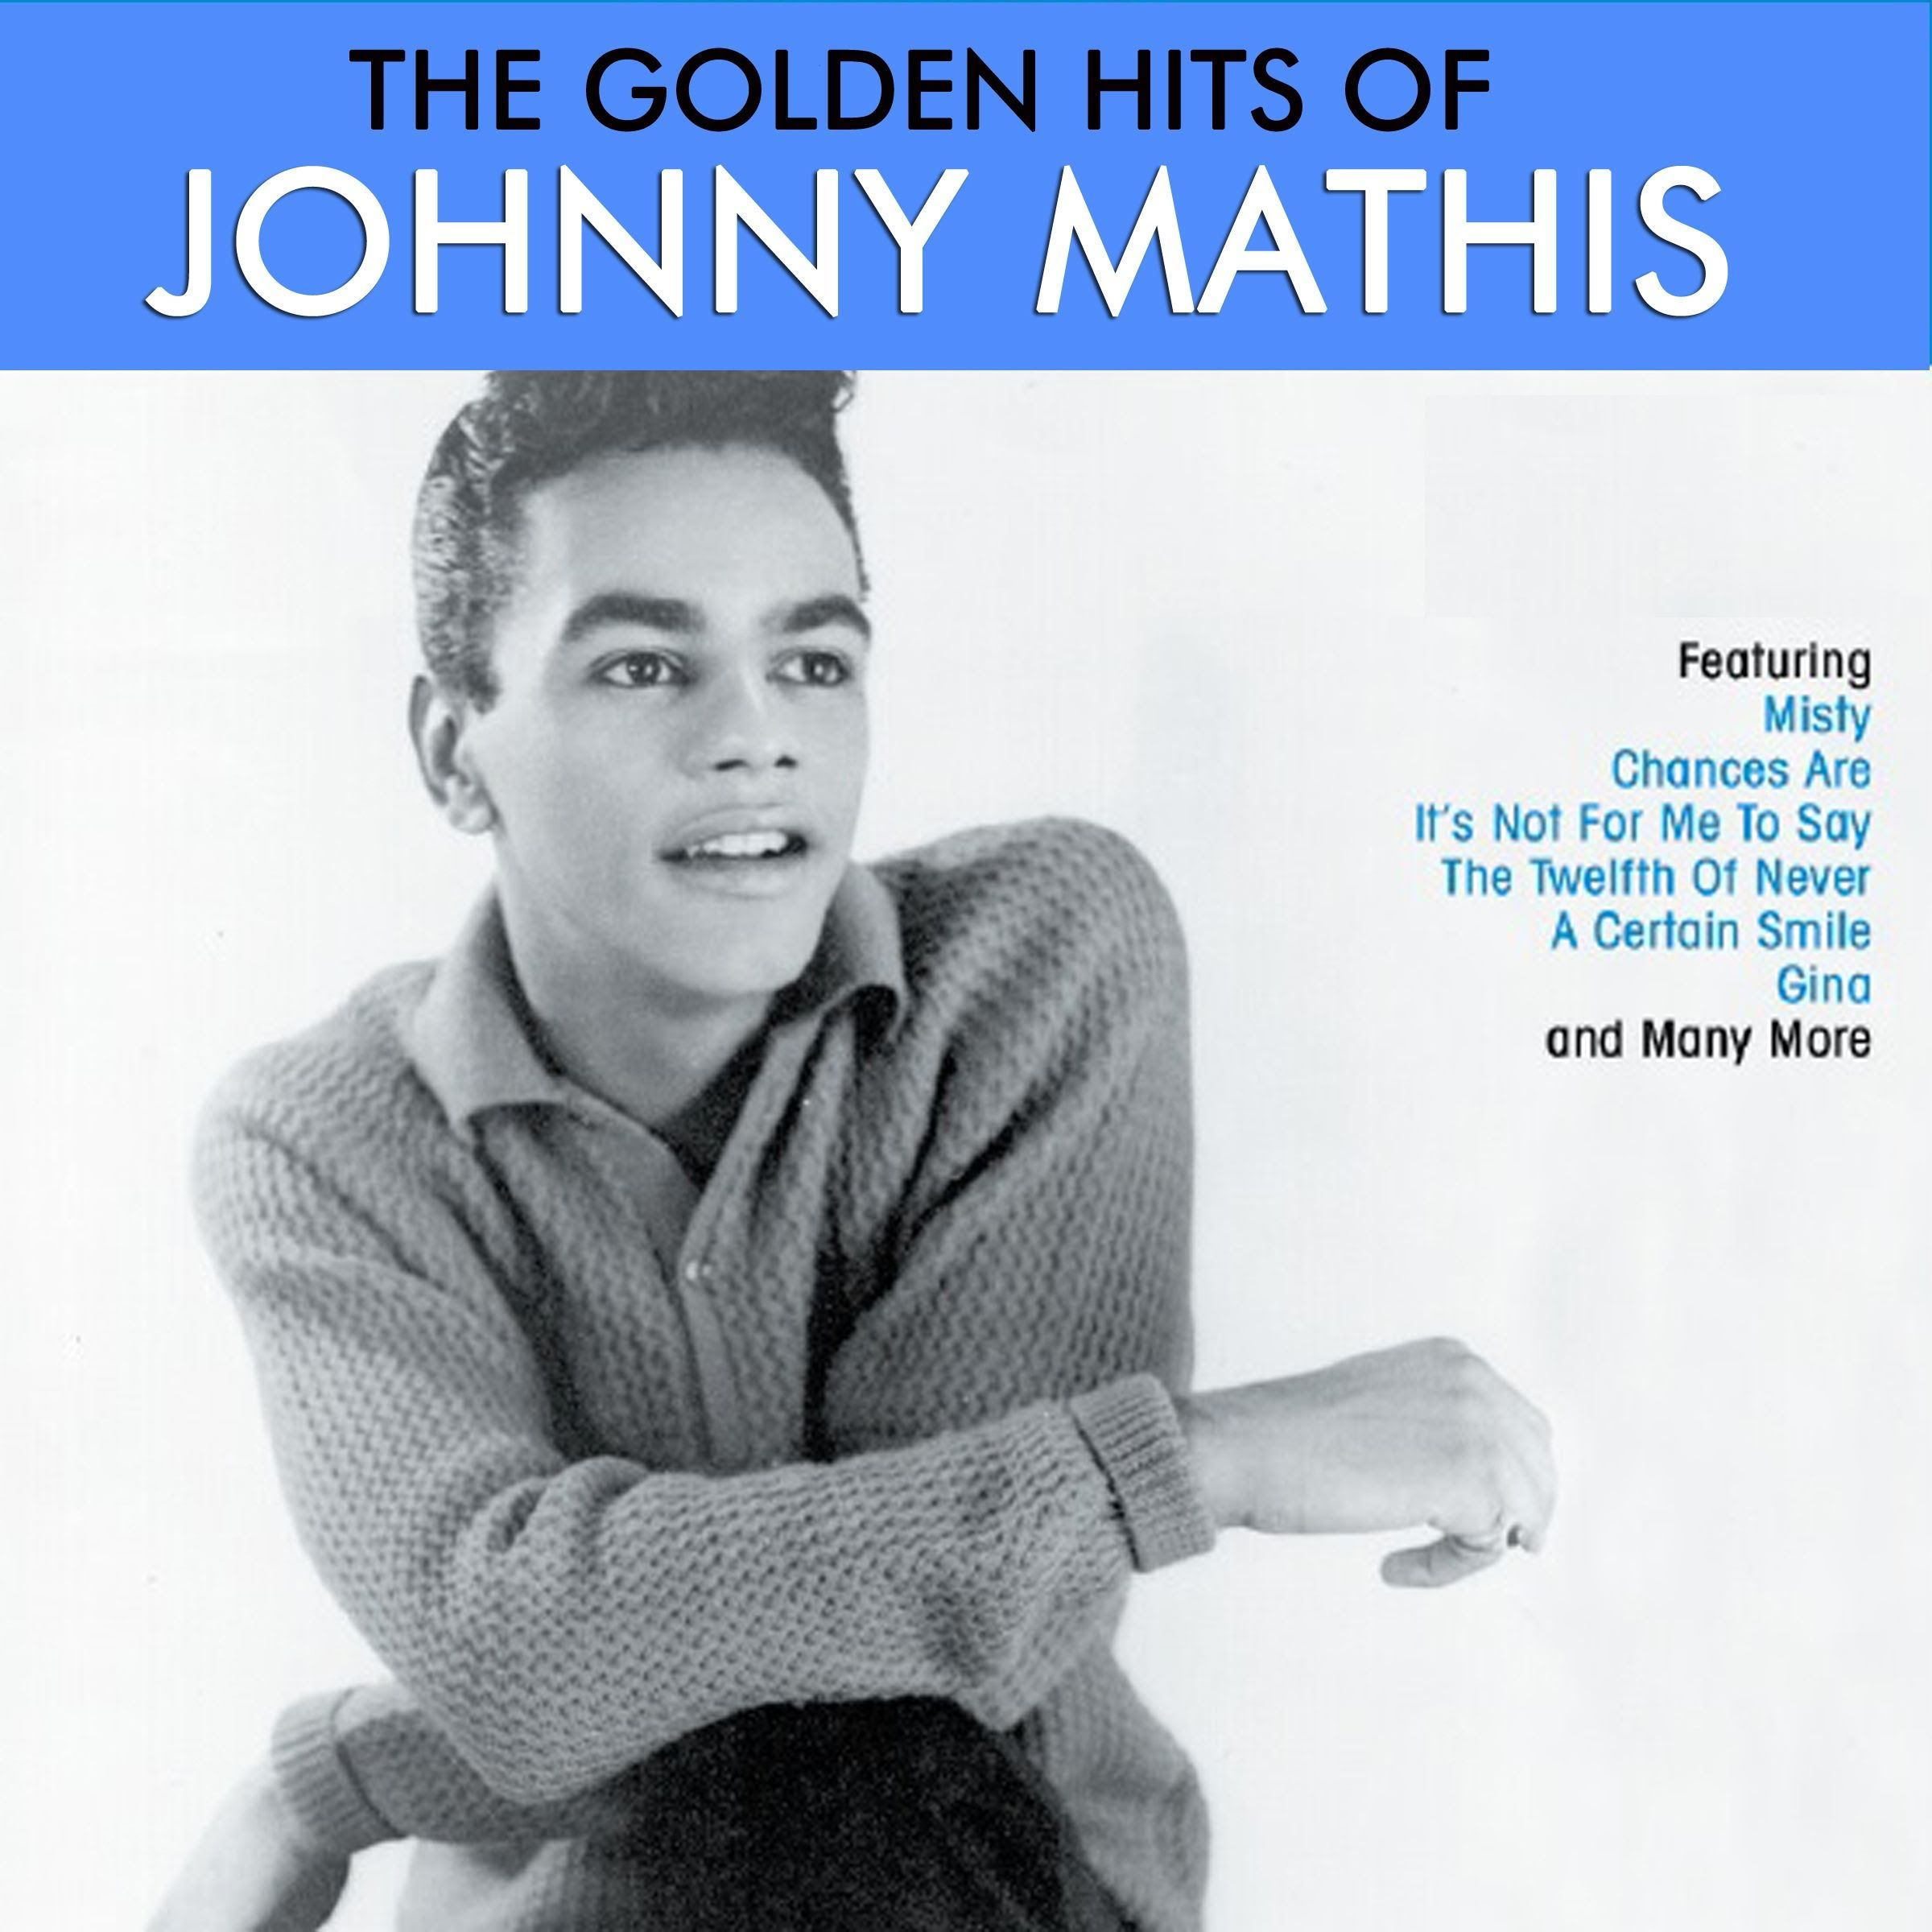 Pin by Roma Poole on Johnny Mathis in 2018 | Pinterest | Johnny ...